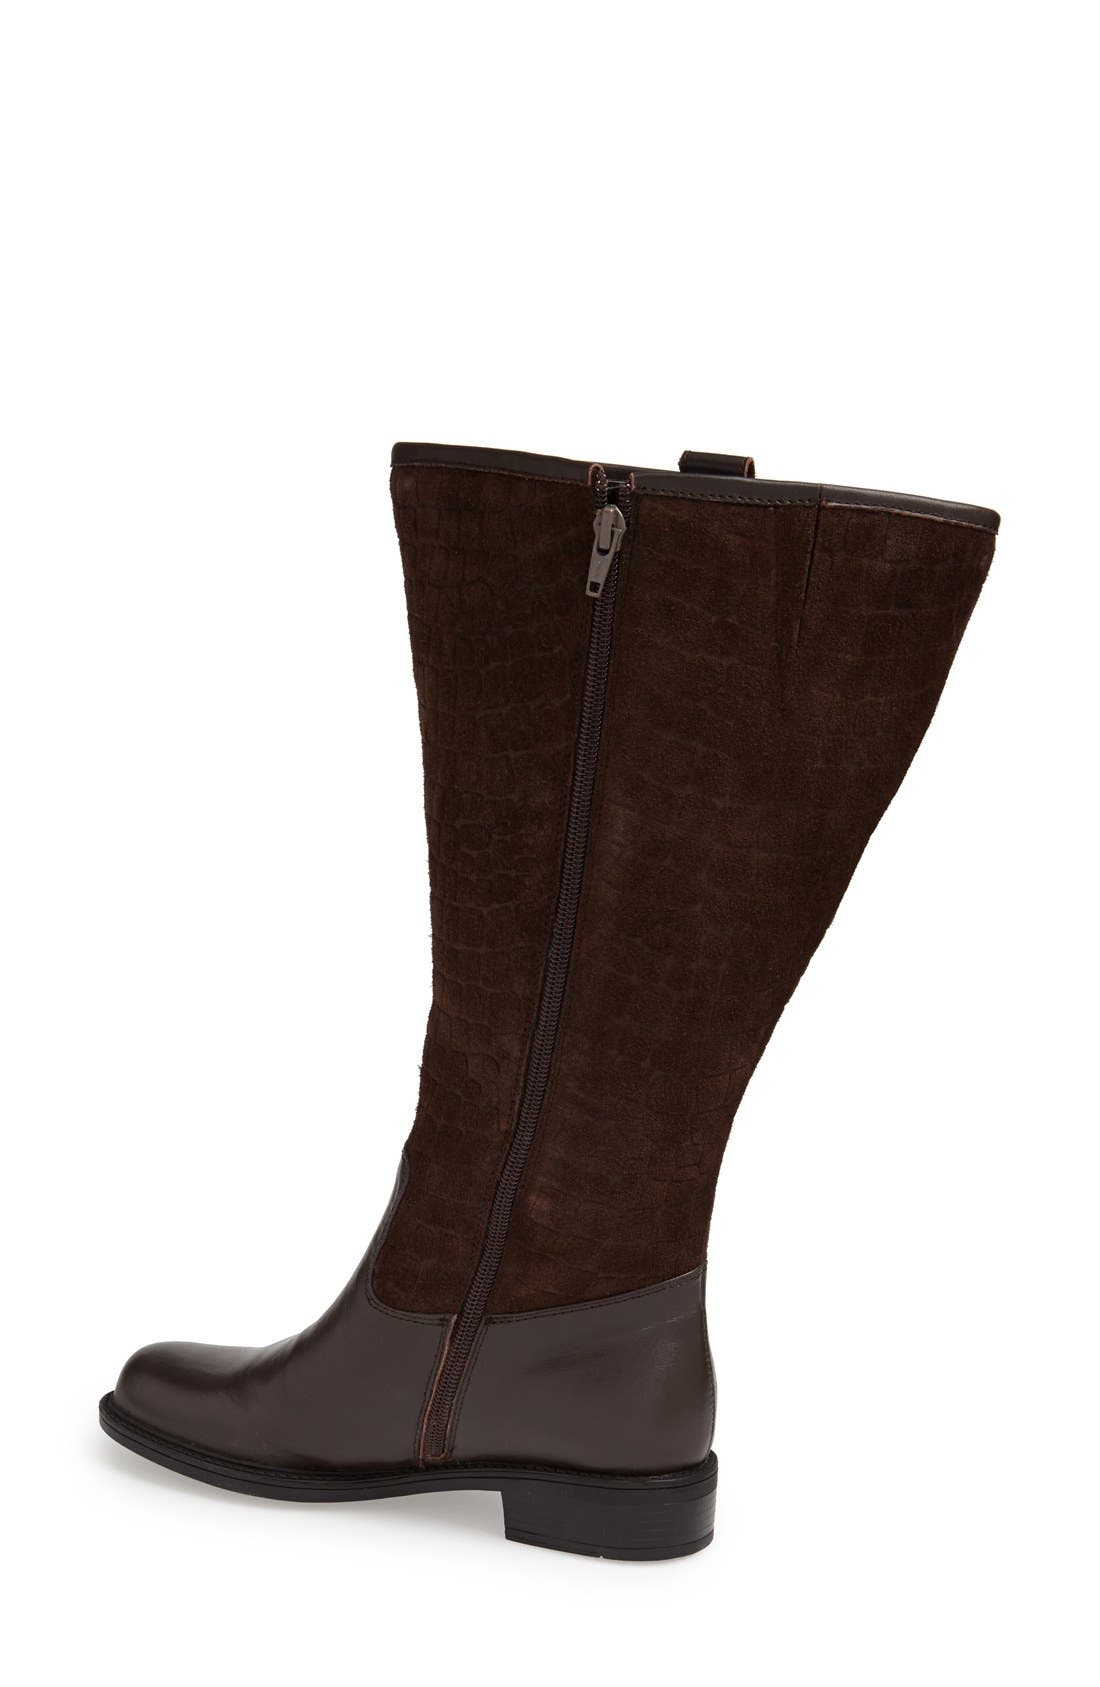 'Best' Calfskin Leather & Suede Boot,                             Alternate thumbnail 2, color,                             Brown Calf/ Suede